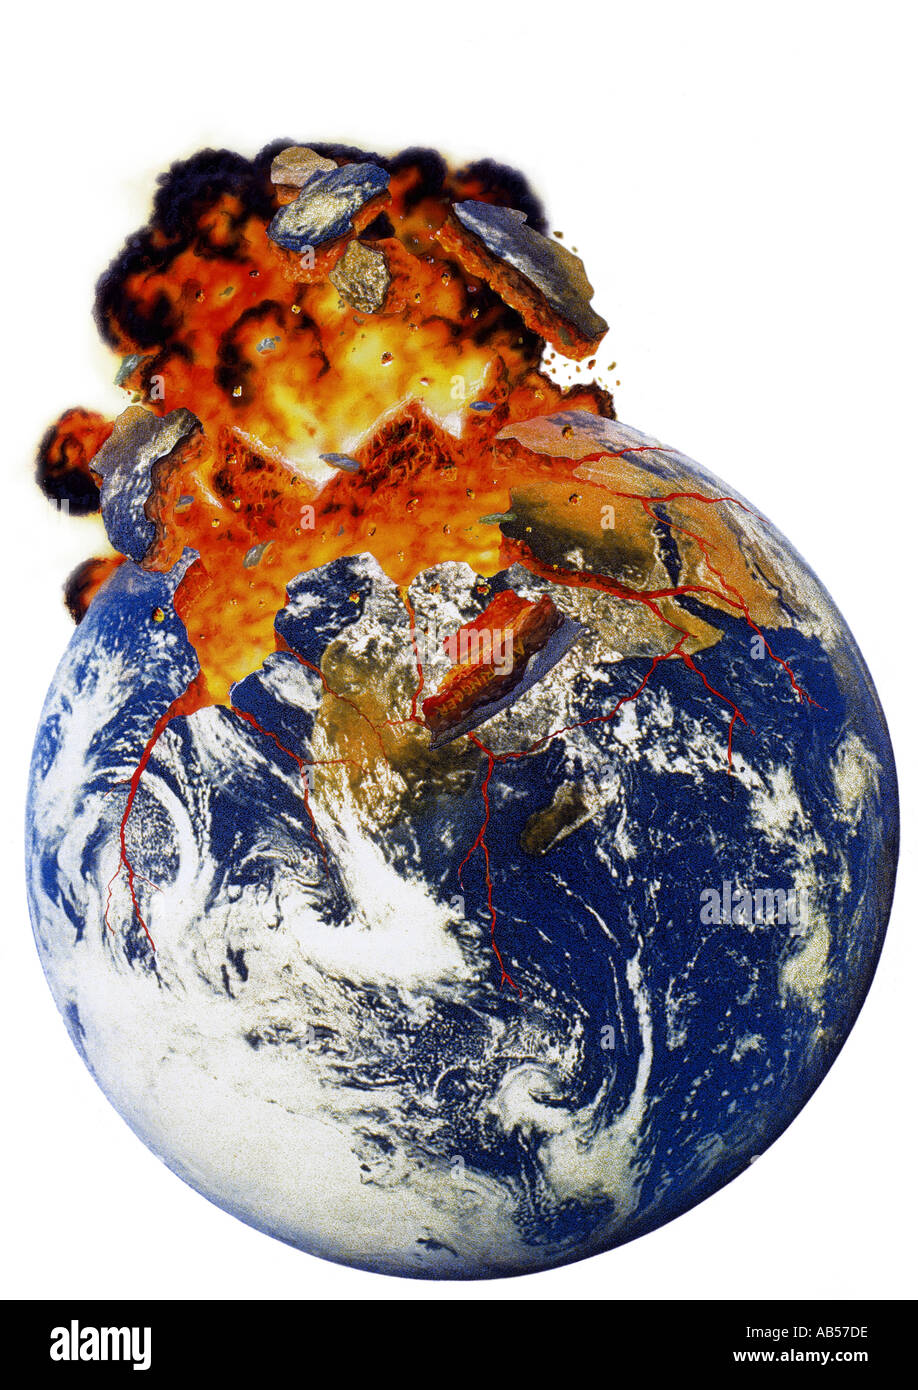 art work blasting earth - Stock Image